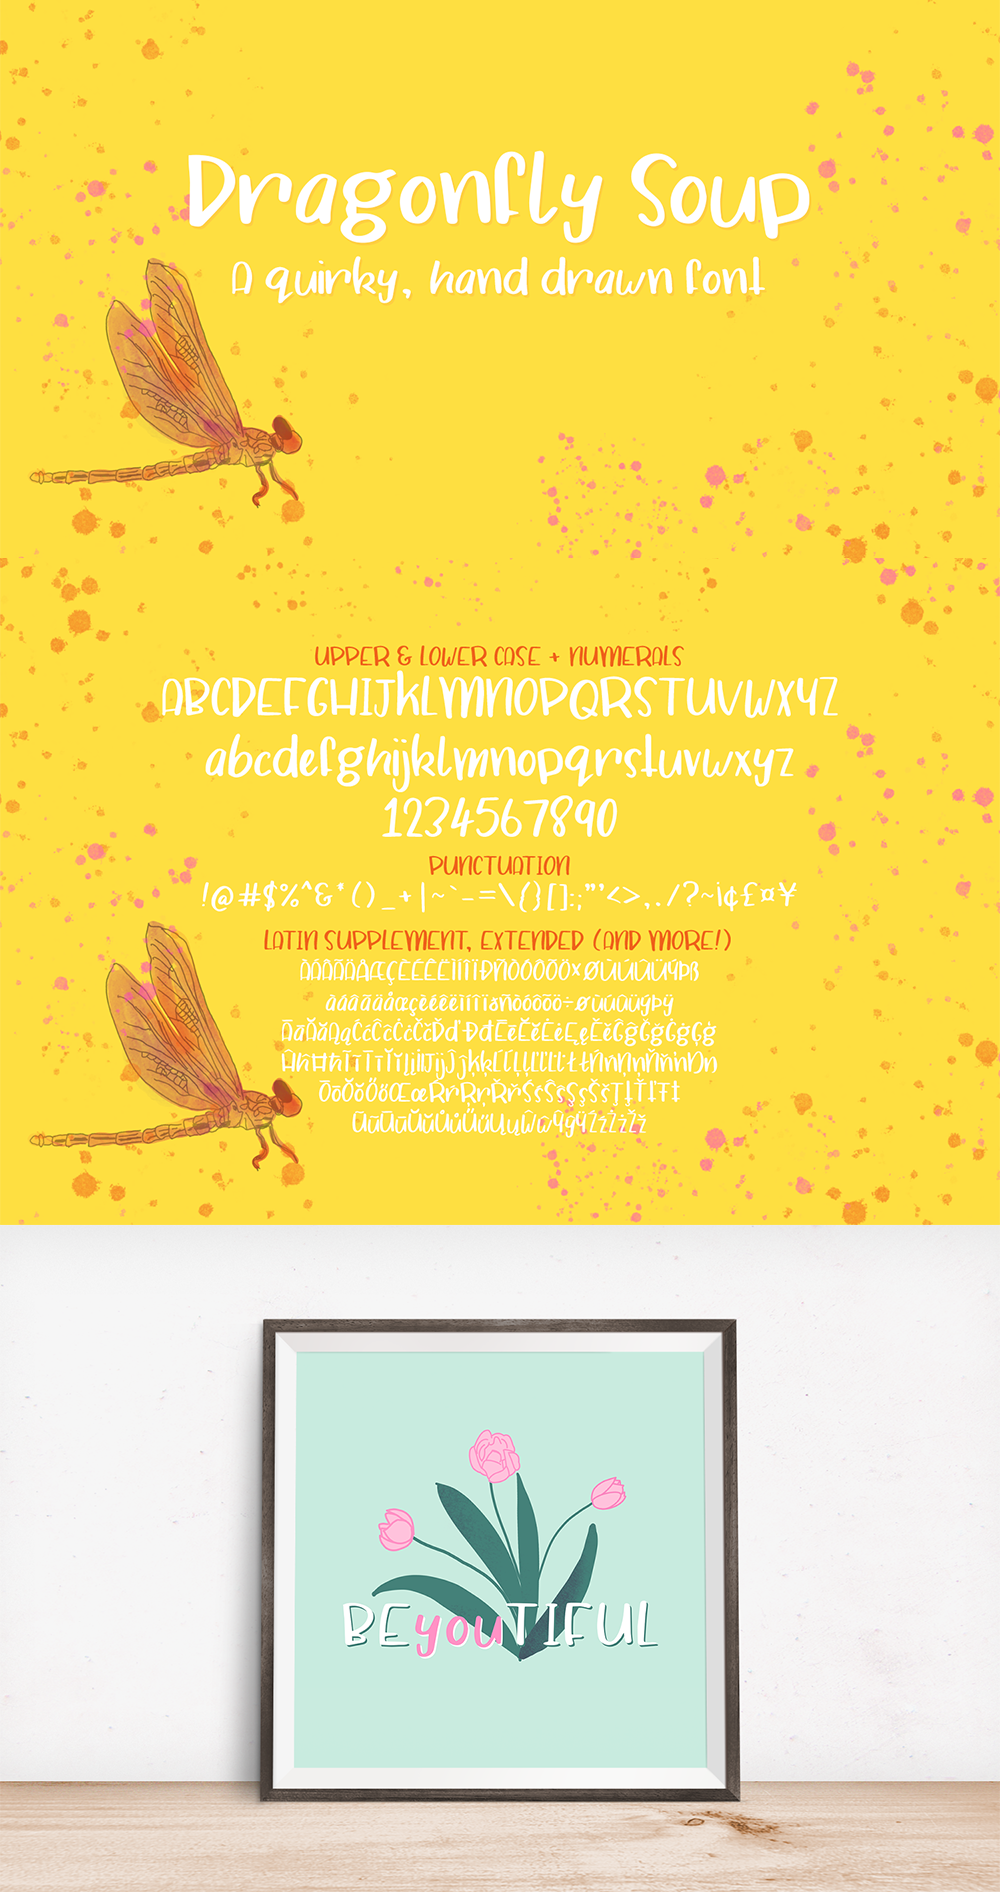 Dragonfly Soup - A quirky hand drawn font example image 7